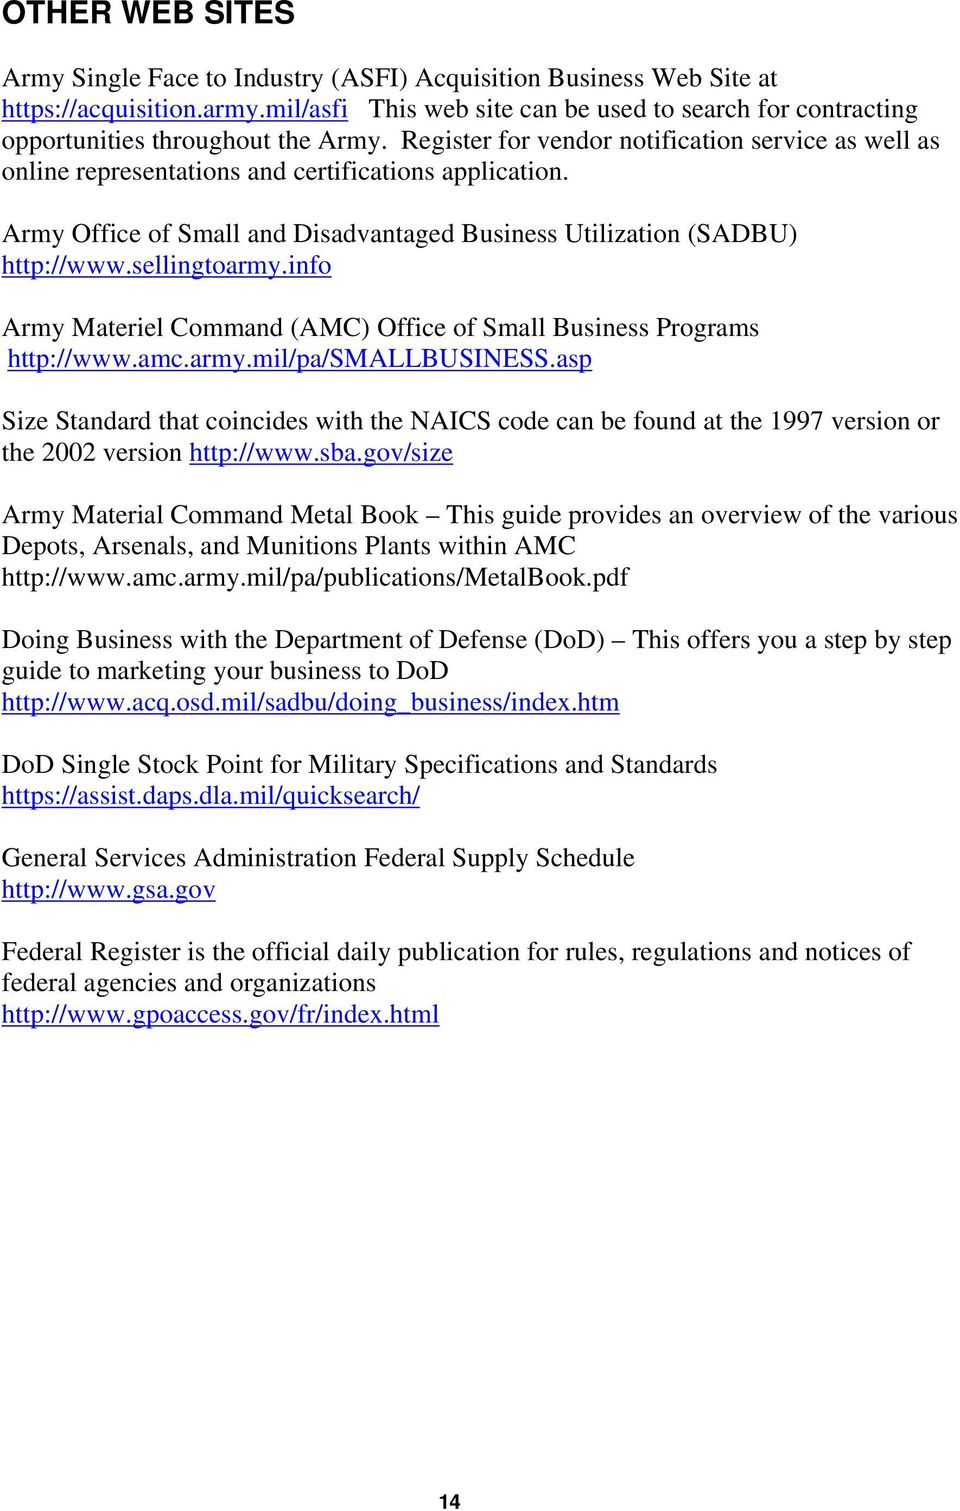 Register for vendor notification service as well as online representations and certifications application. Army Office of Small and Disadvantaged Business Utilization (SADBU) http://www.sellingtoarmy.